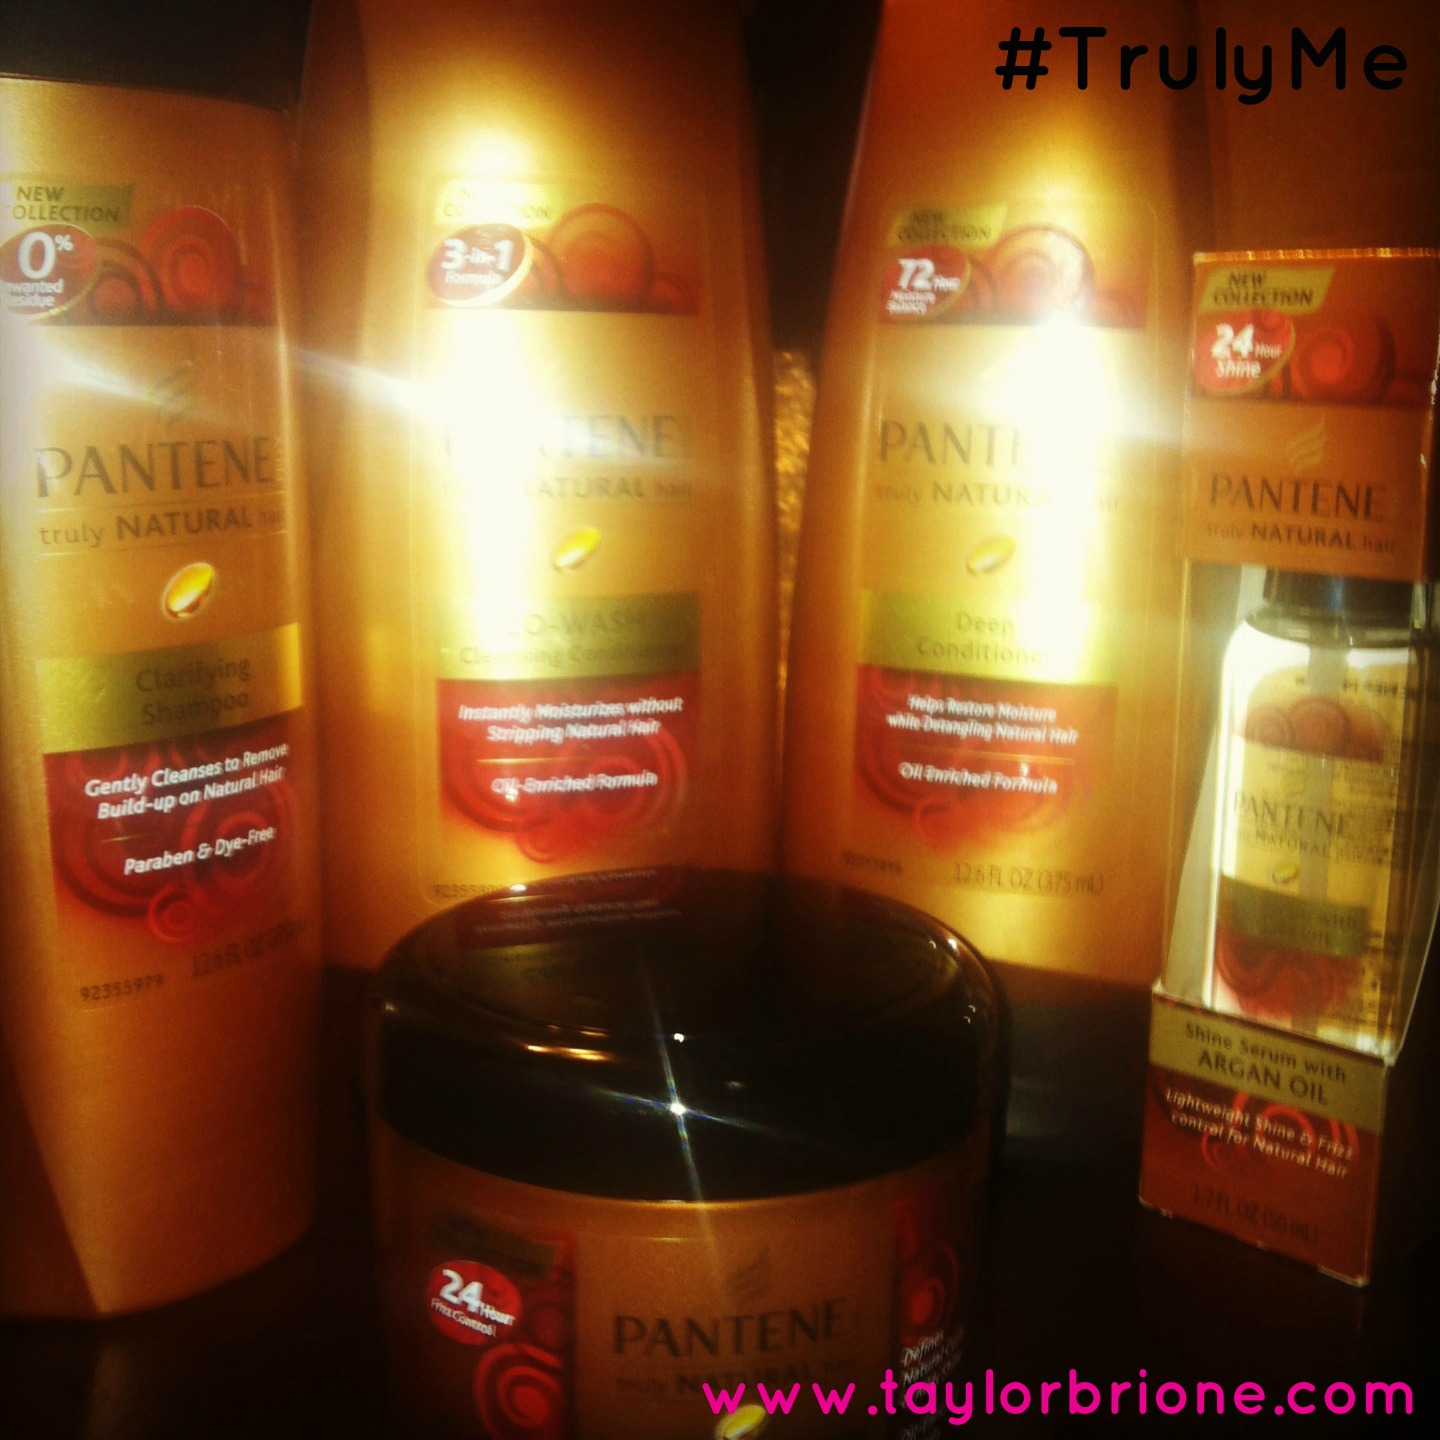 One Year Natural & Pantene Pro-V Truly Natural Product Review! #TrulyMe